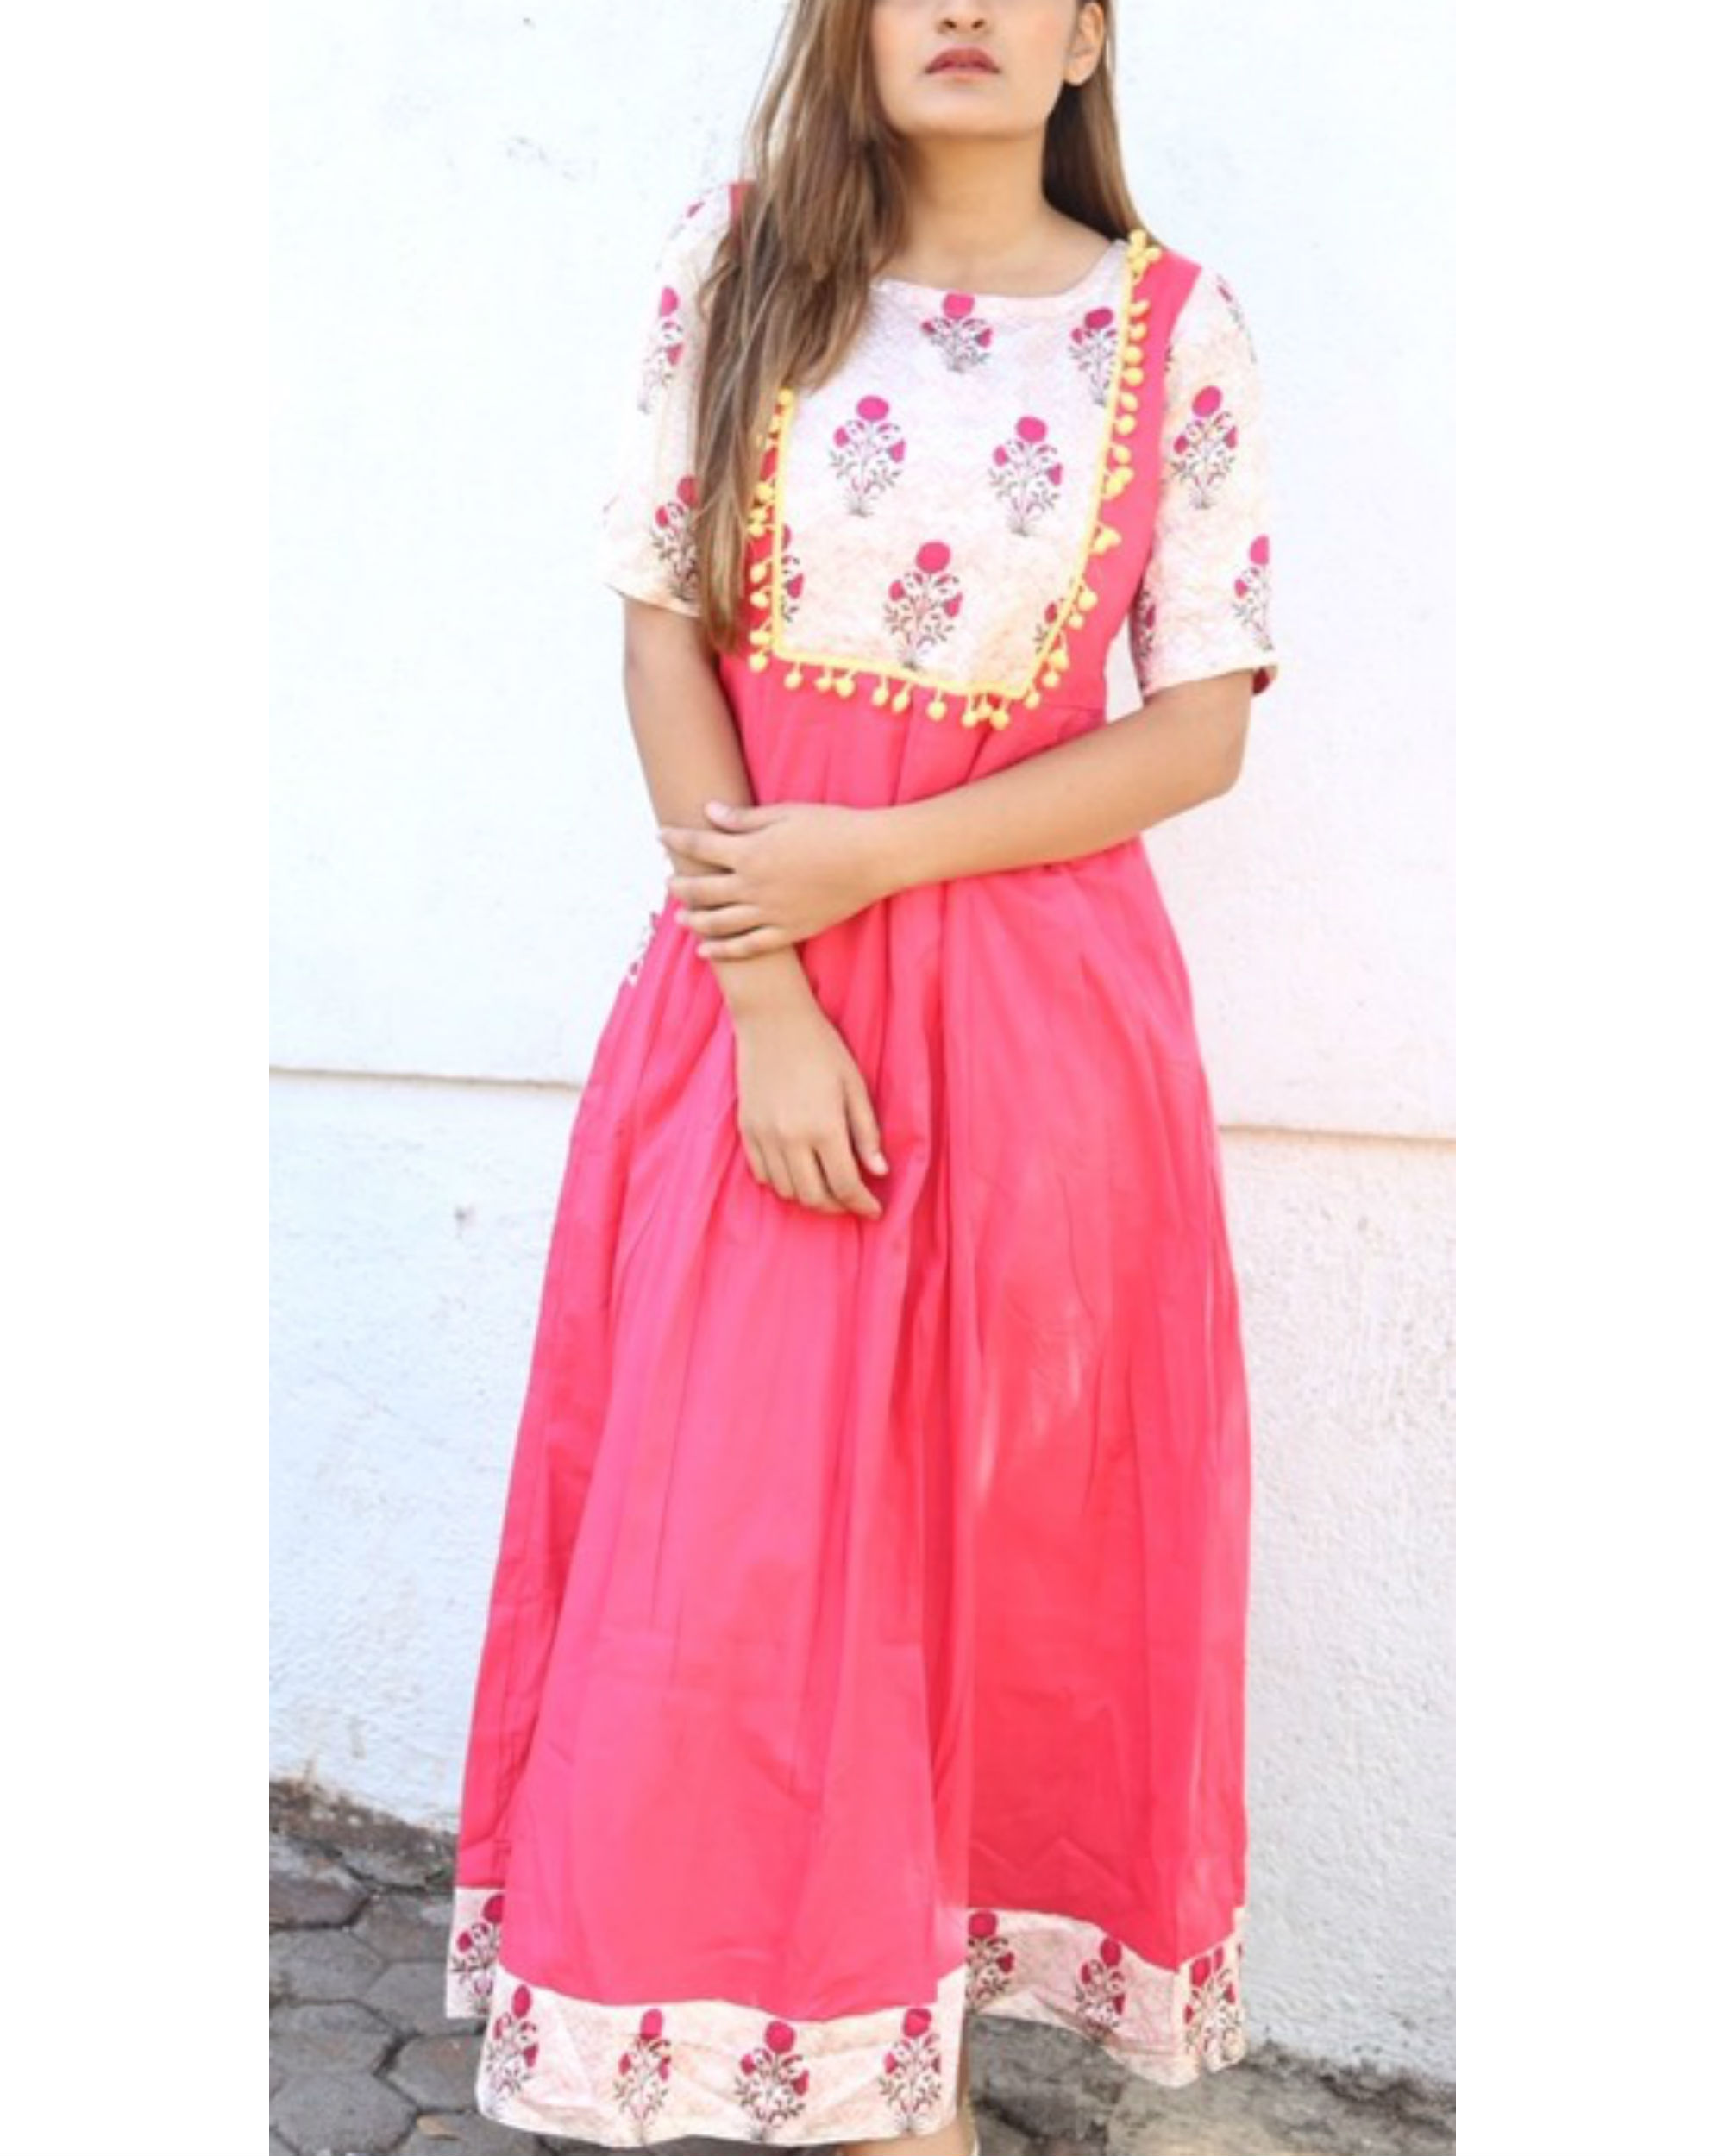 618d5a326c5 Pink and floral pom-pom maxi by Miar